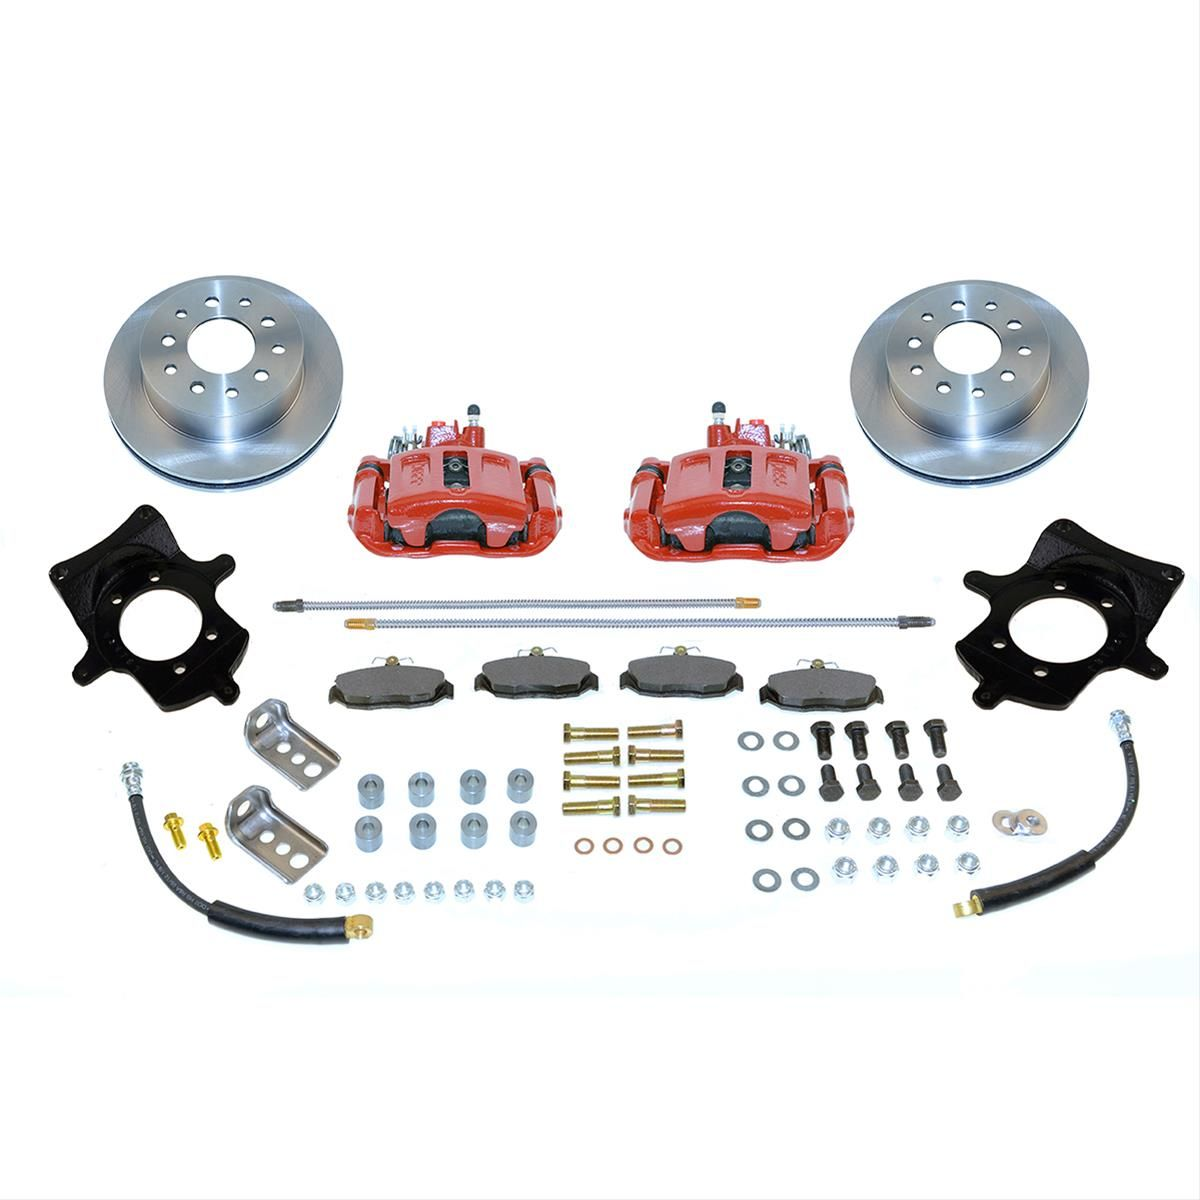 Find Ford Ranger Ssbc Drum To Disc Brake Conversion Kits A114r And